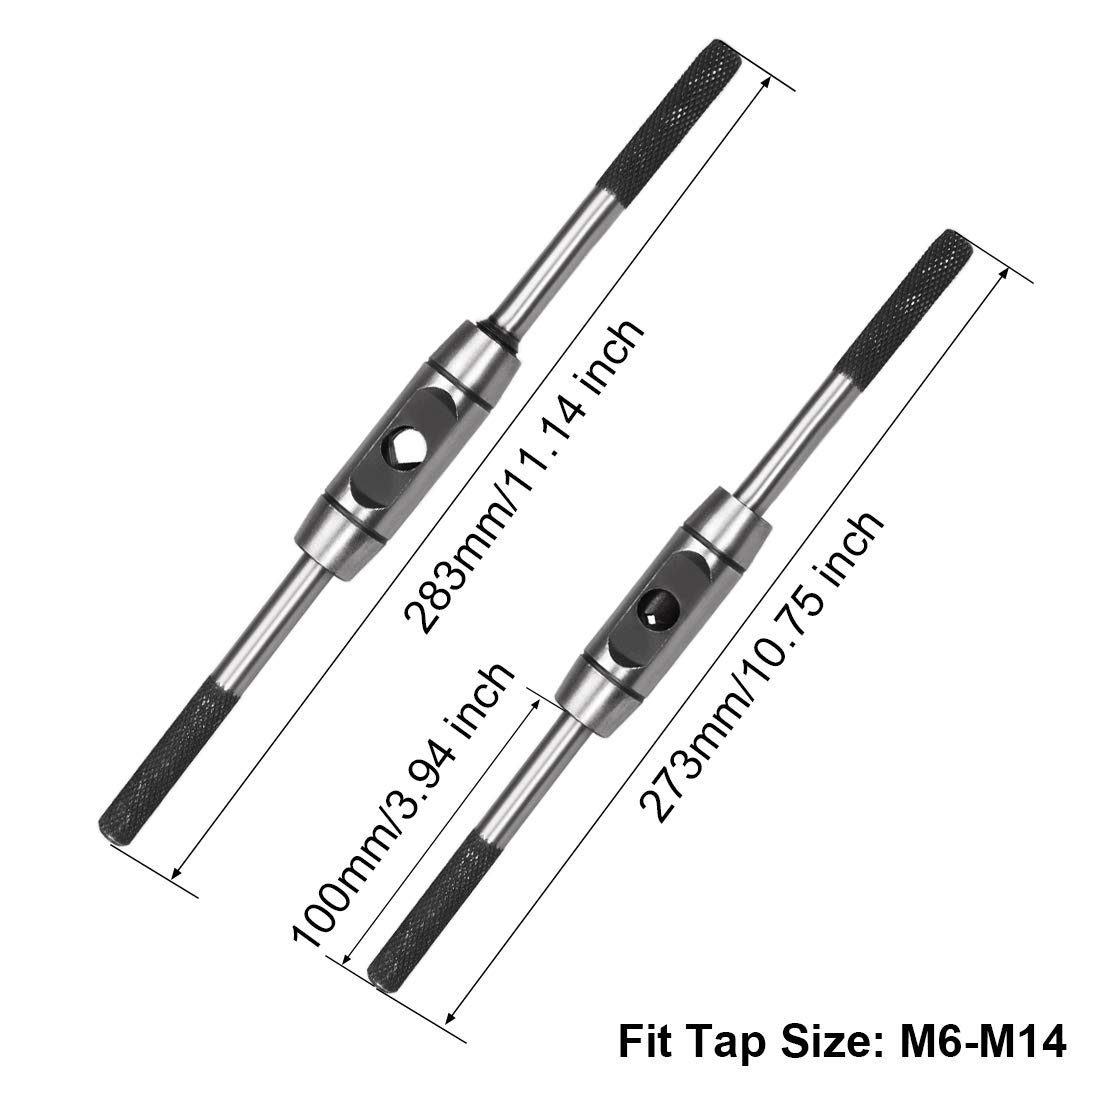 uxcell Tap Wrench Handle M3-M12 Metric Adjustable Bar Taps Holder Straight Tapping Wrench